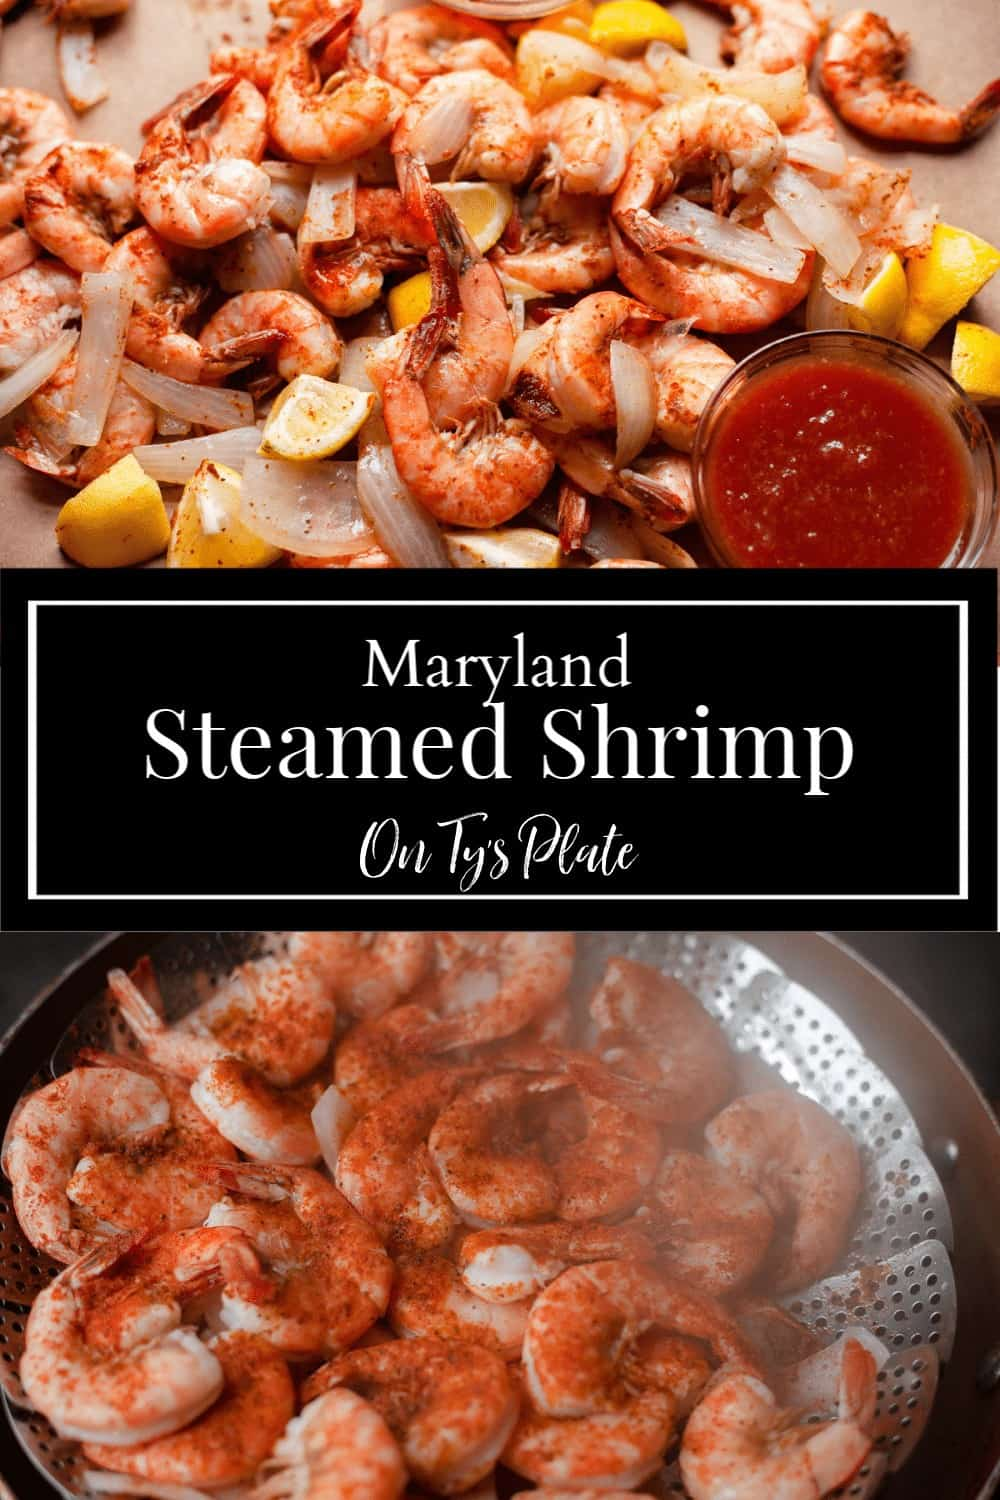 Maryland-Style Steamed Shrimp with Old Bay Butter⠀